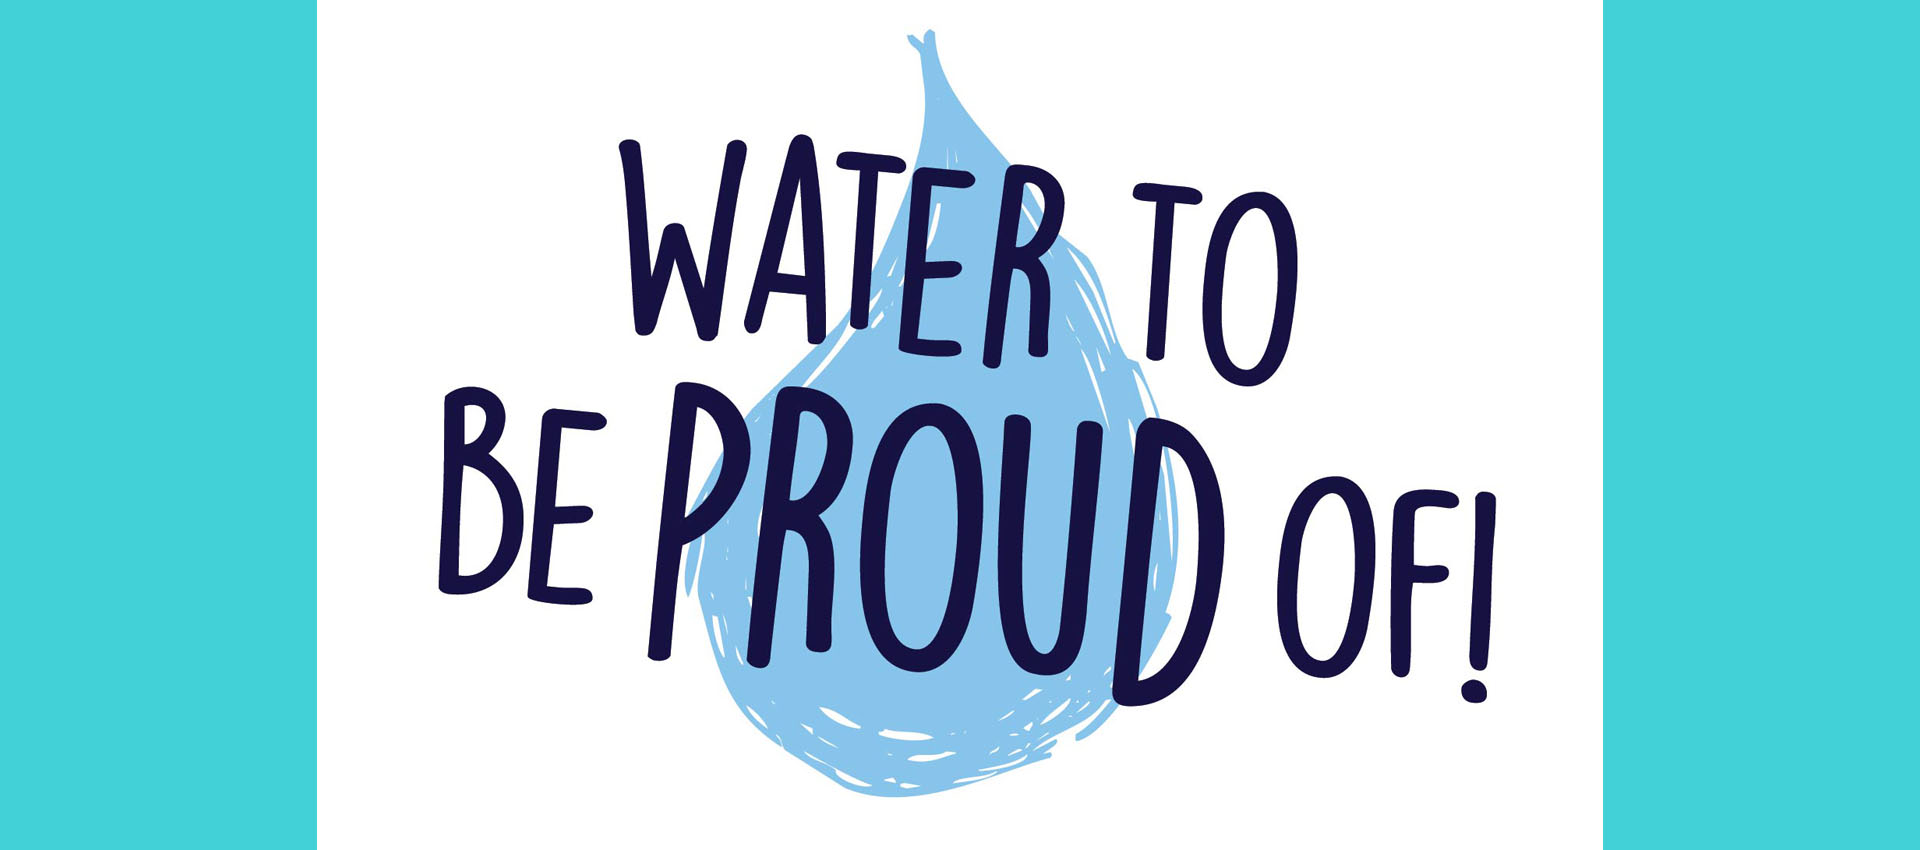 watertobeproudof-edited